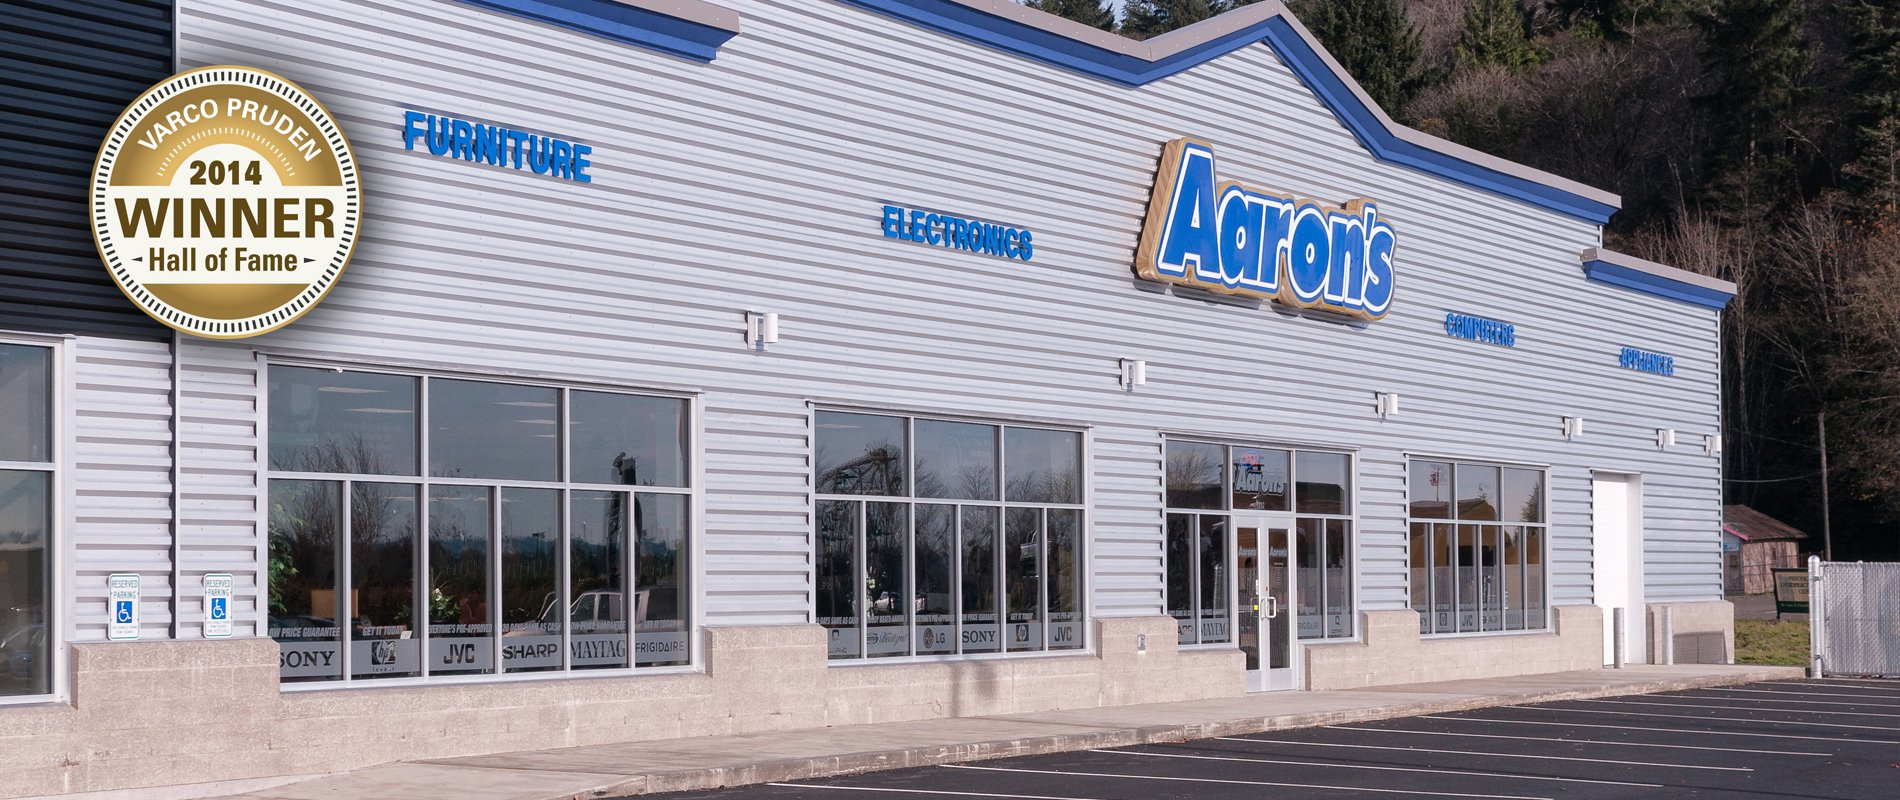 Award winning pre-manufactured metal building system. WA Aaron's Furniture.